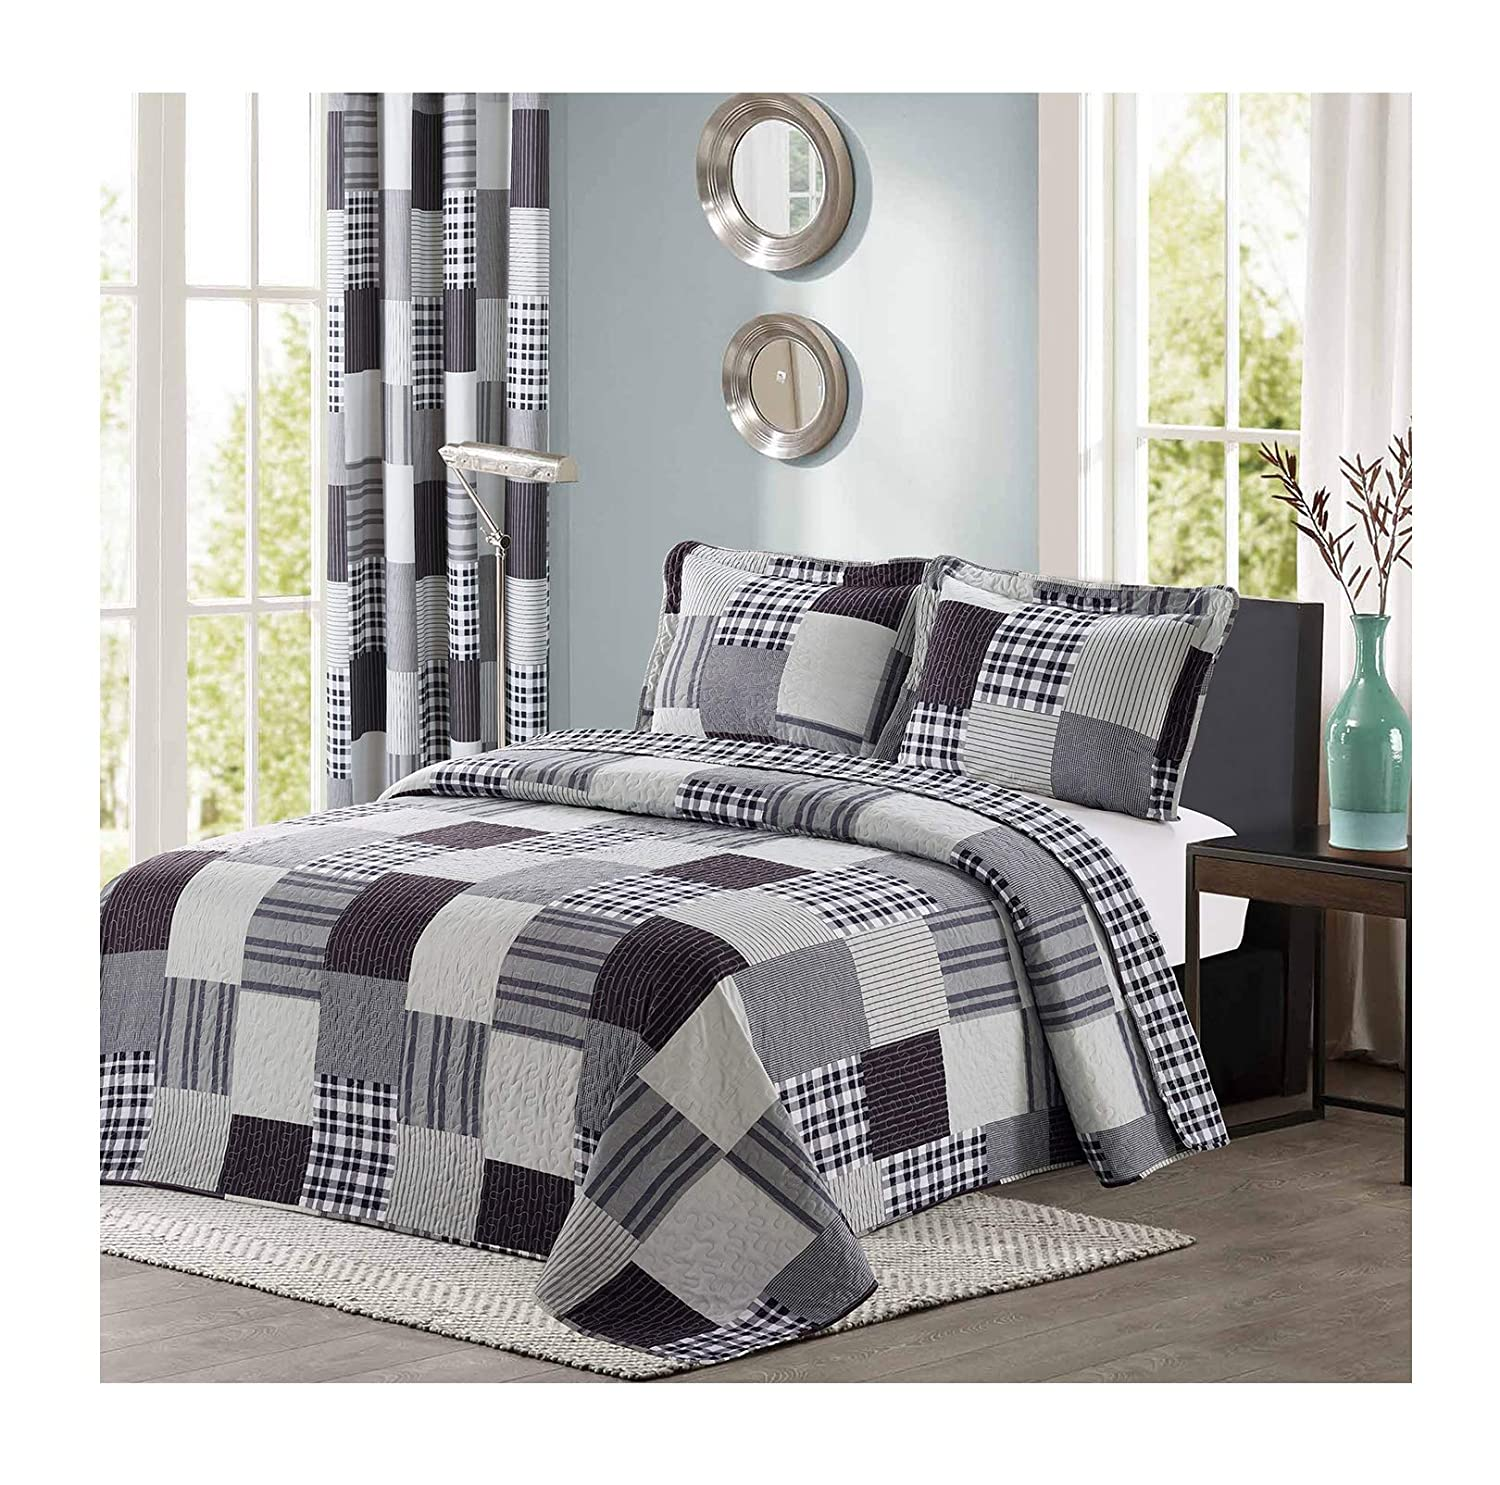 All American Collection Black and Grey Modern Plaid Bedspread and Pillow Sham Set